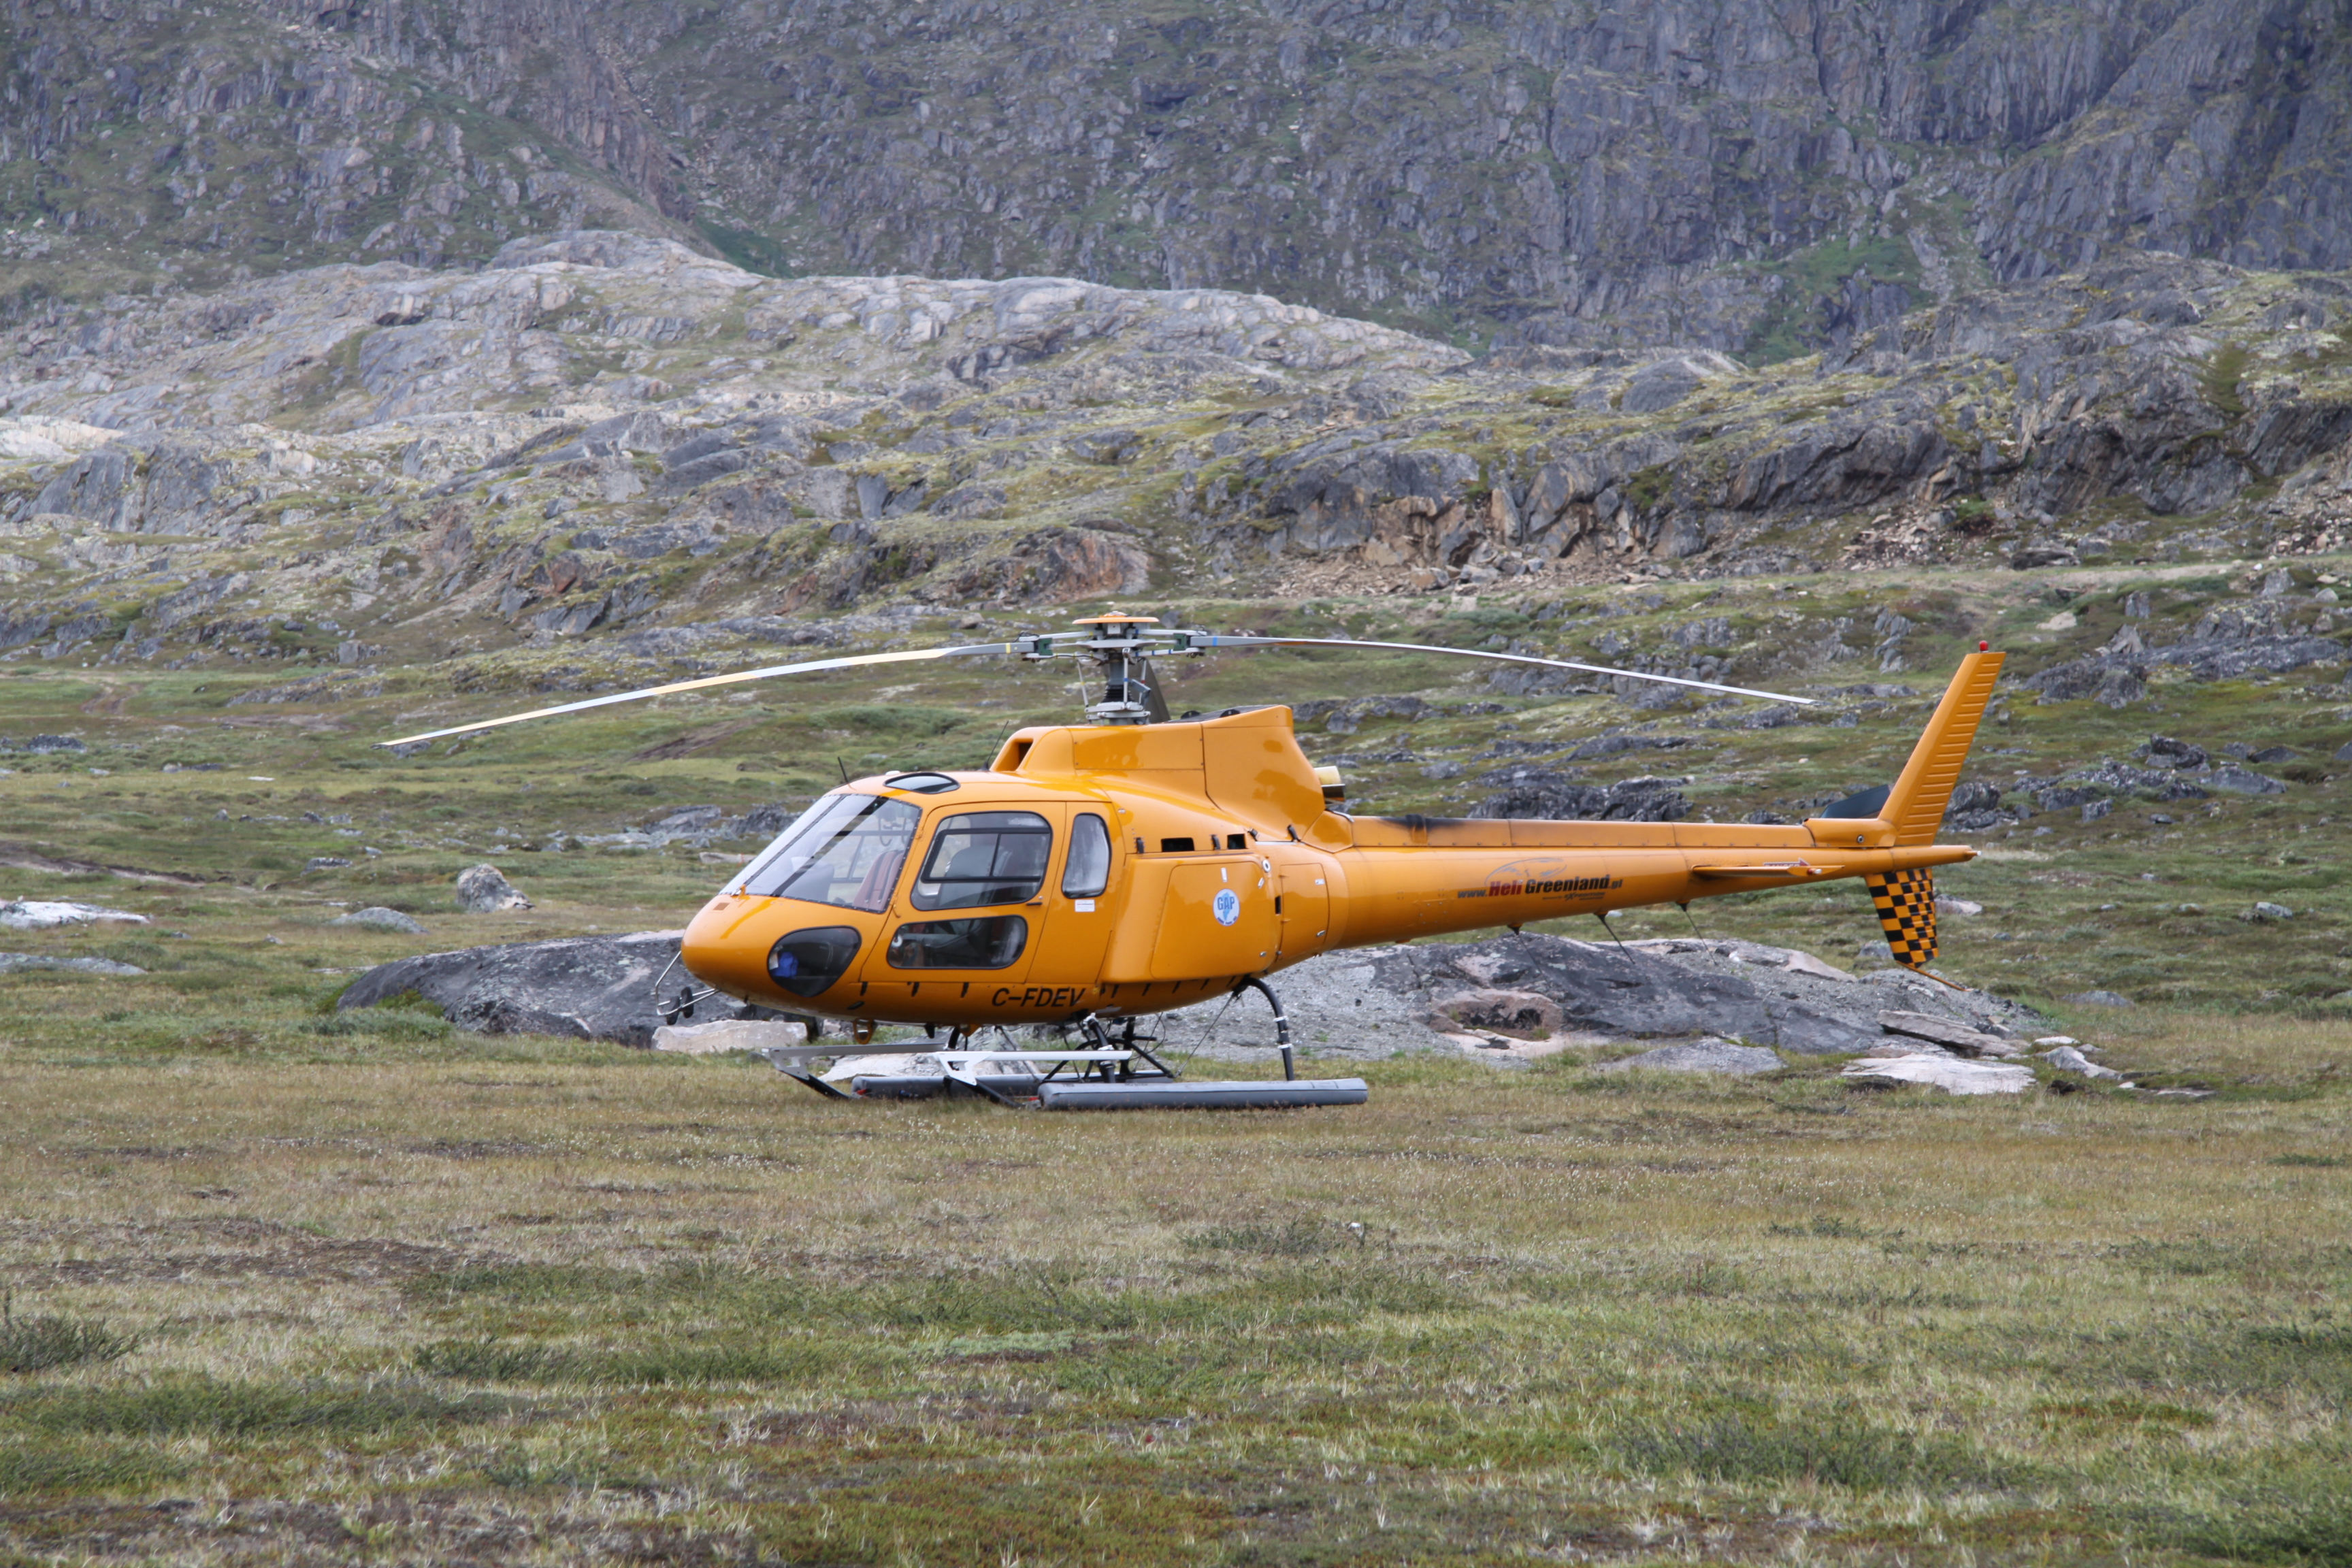 Sisimiut new heliport in summer 2010 (2)